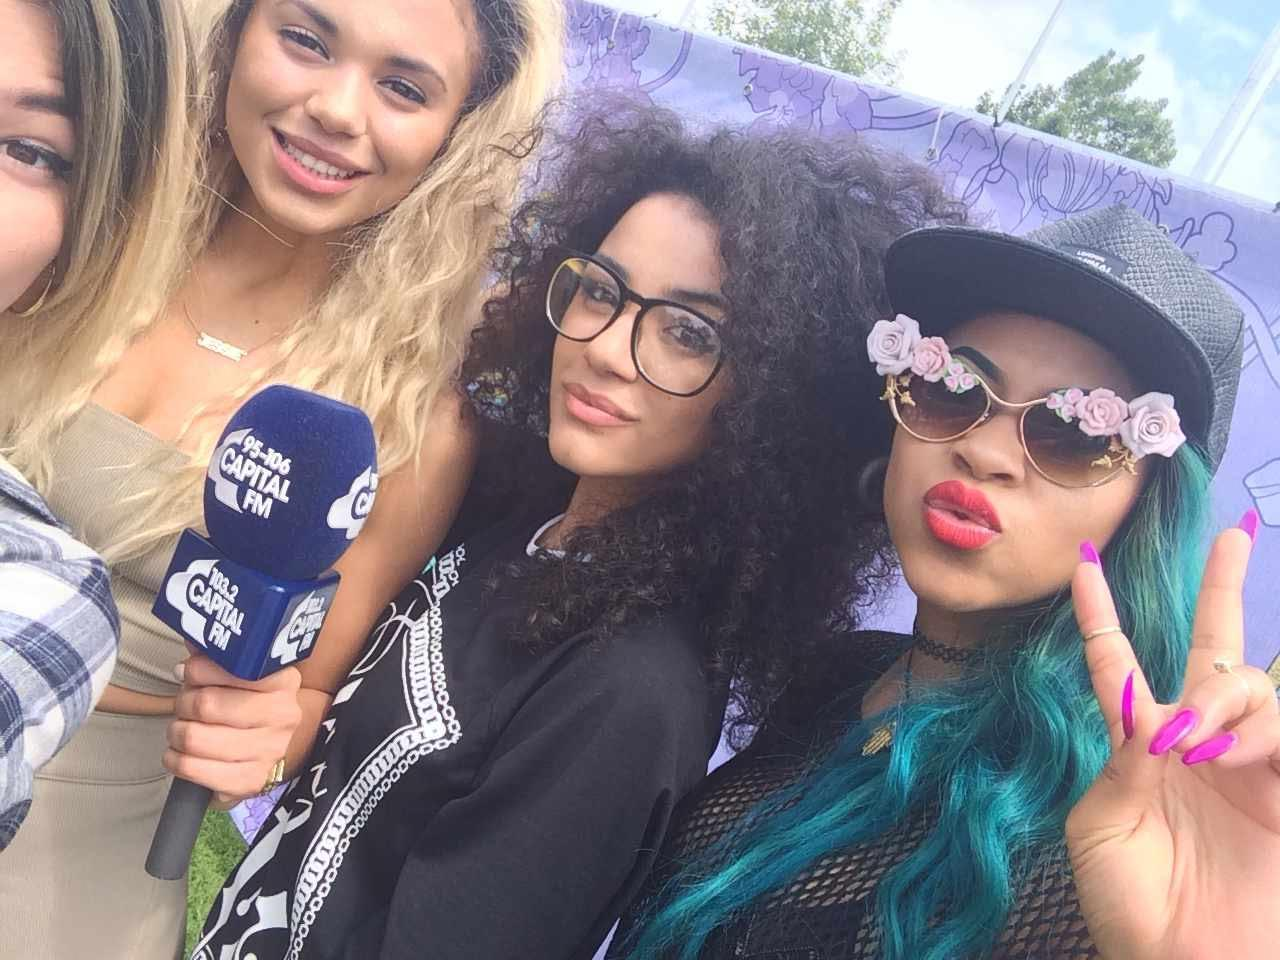 Neon Jungle Selfie Backstage at Isle of Wight 2014